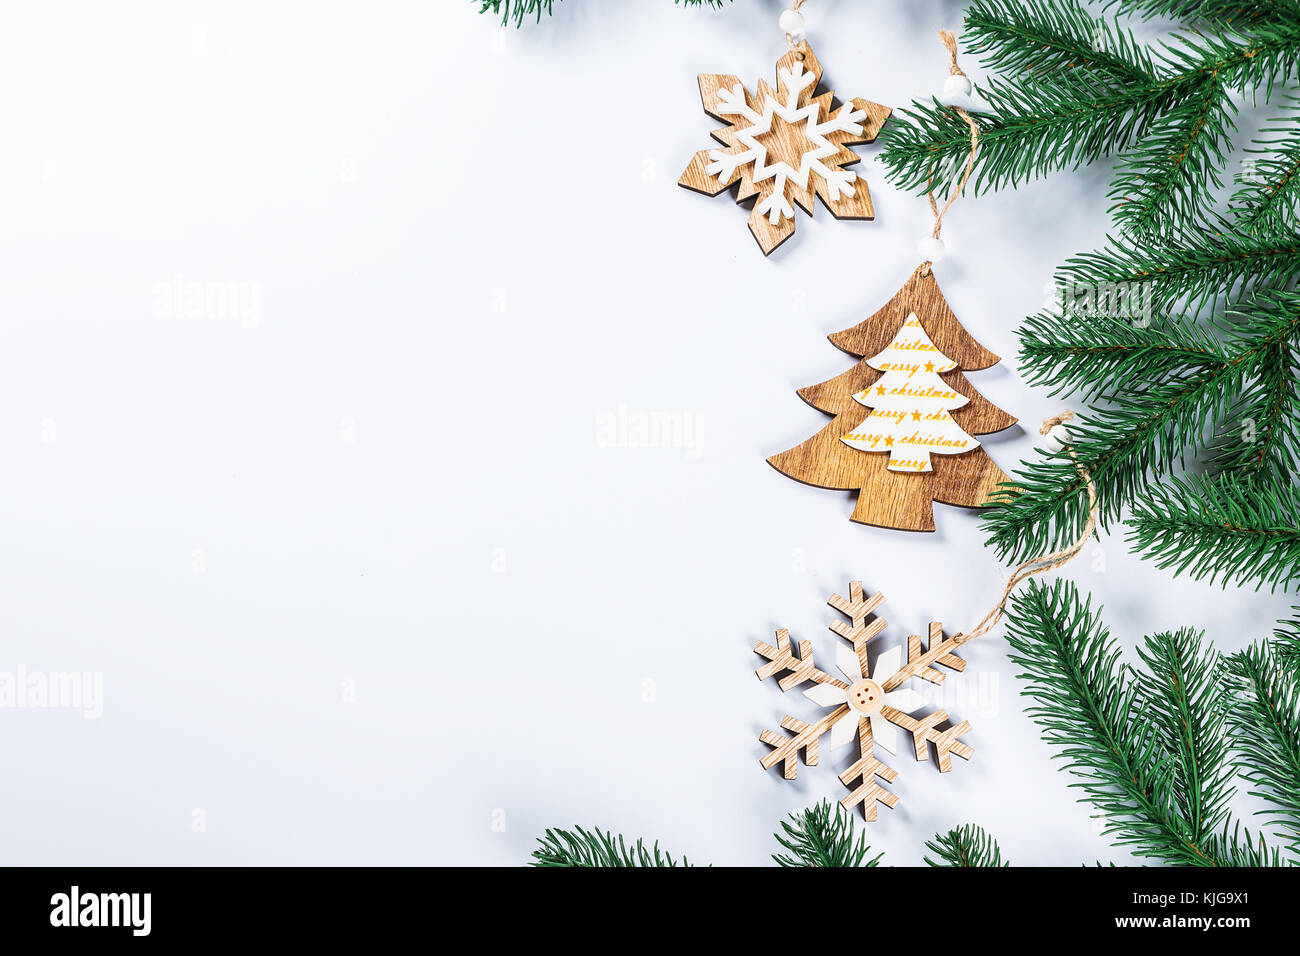 Christmas Frame With The Branches Of Tree And Wooden Decorations On White Background Simple Composition Free Space